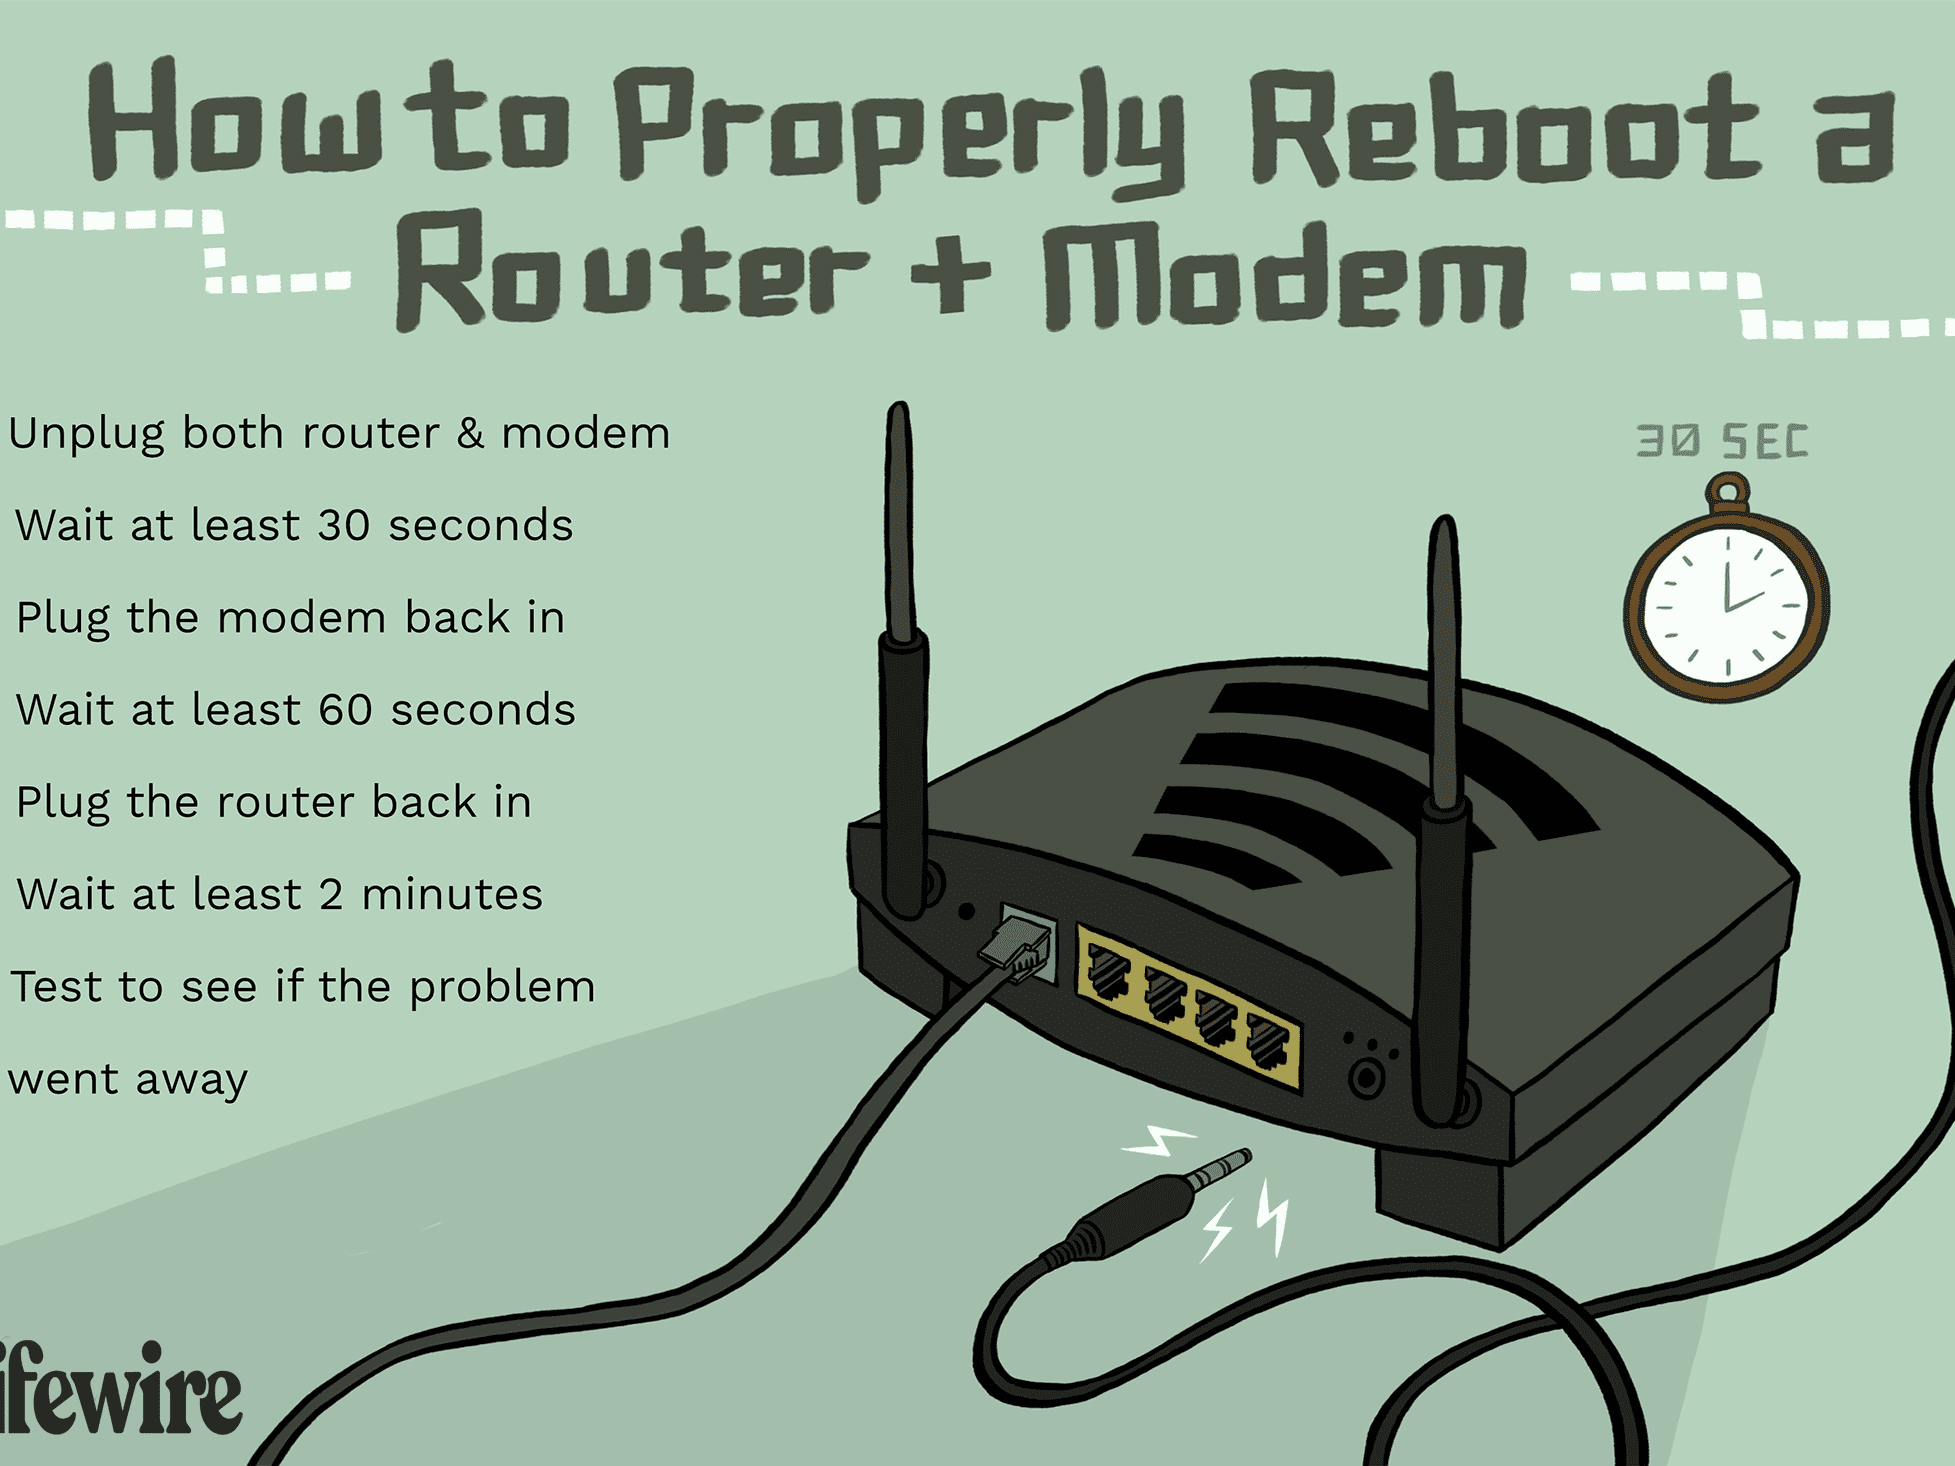 How To Properly Restart A Router Modem